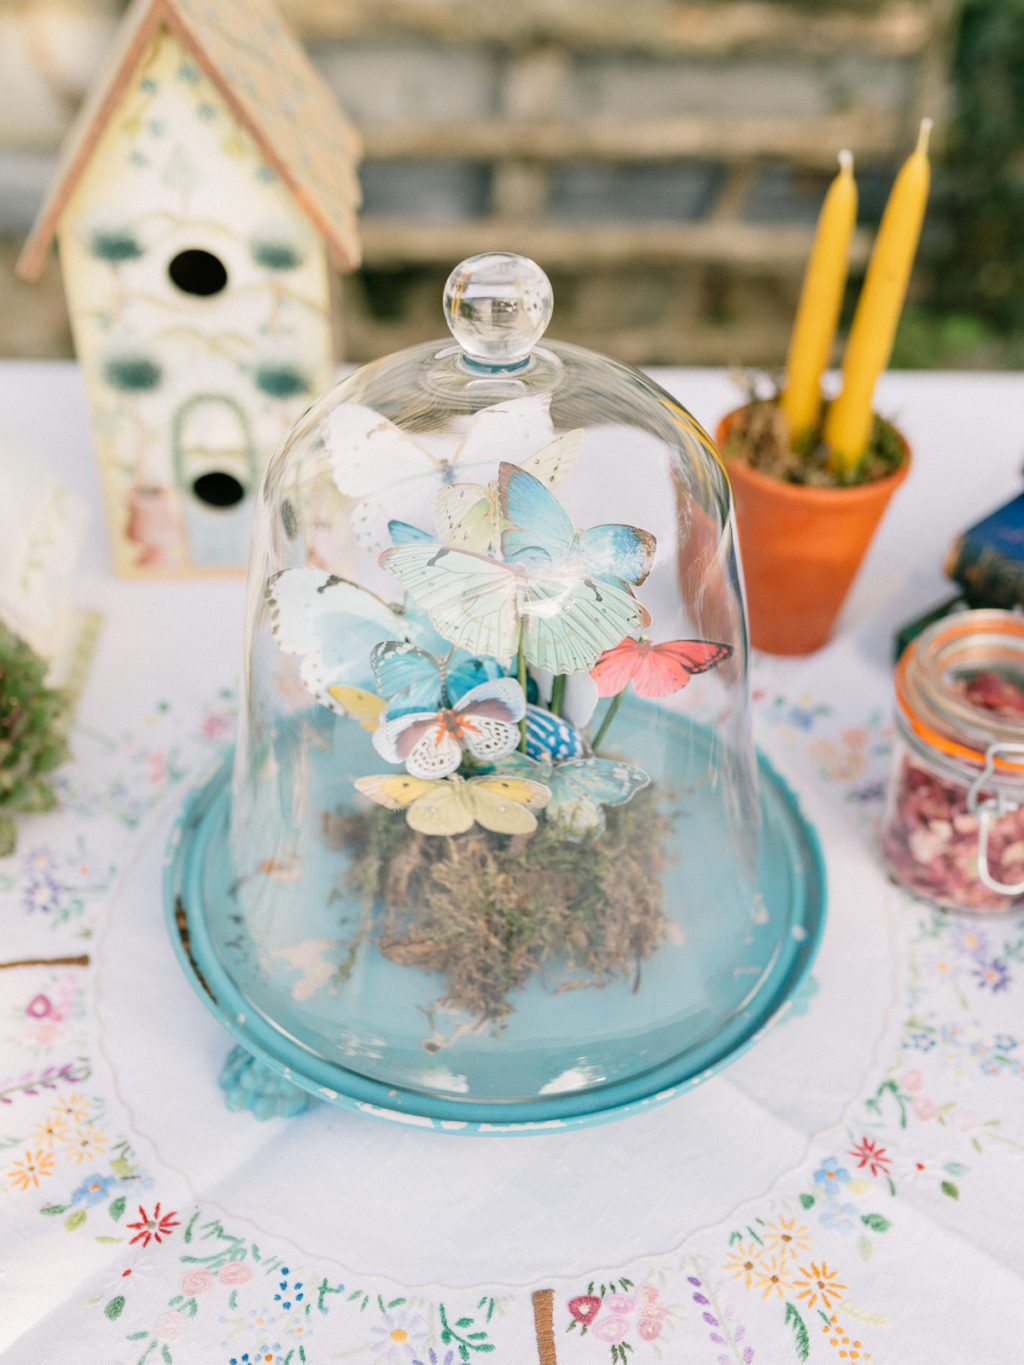 Sustainable Wedding With Spring Garden Styling At Kate's Garden Shropshire